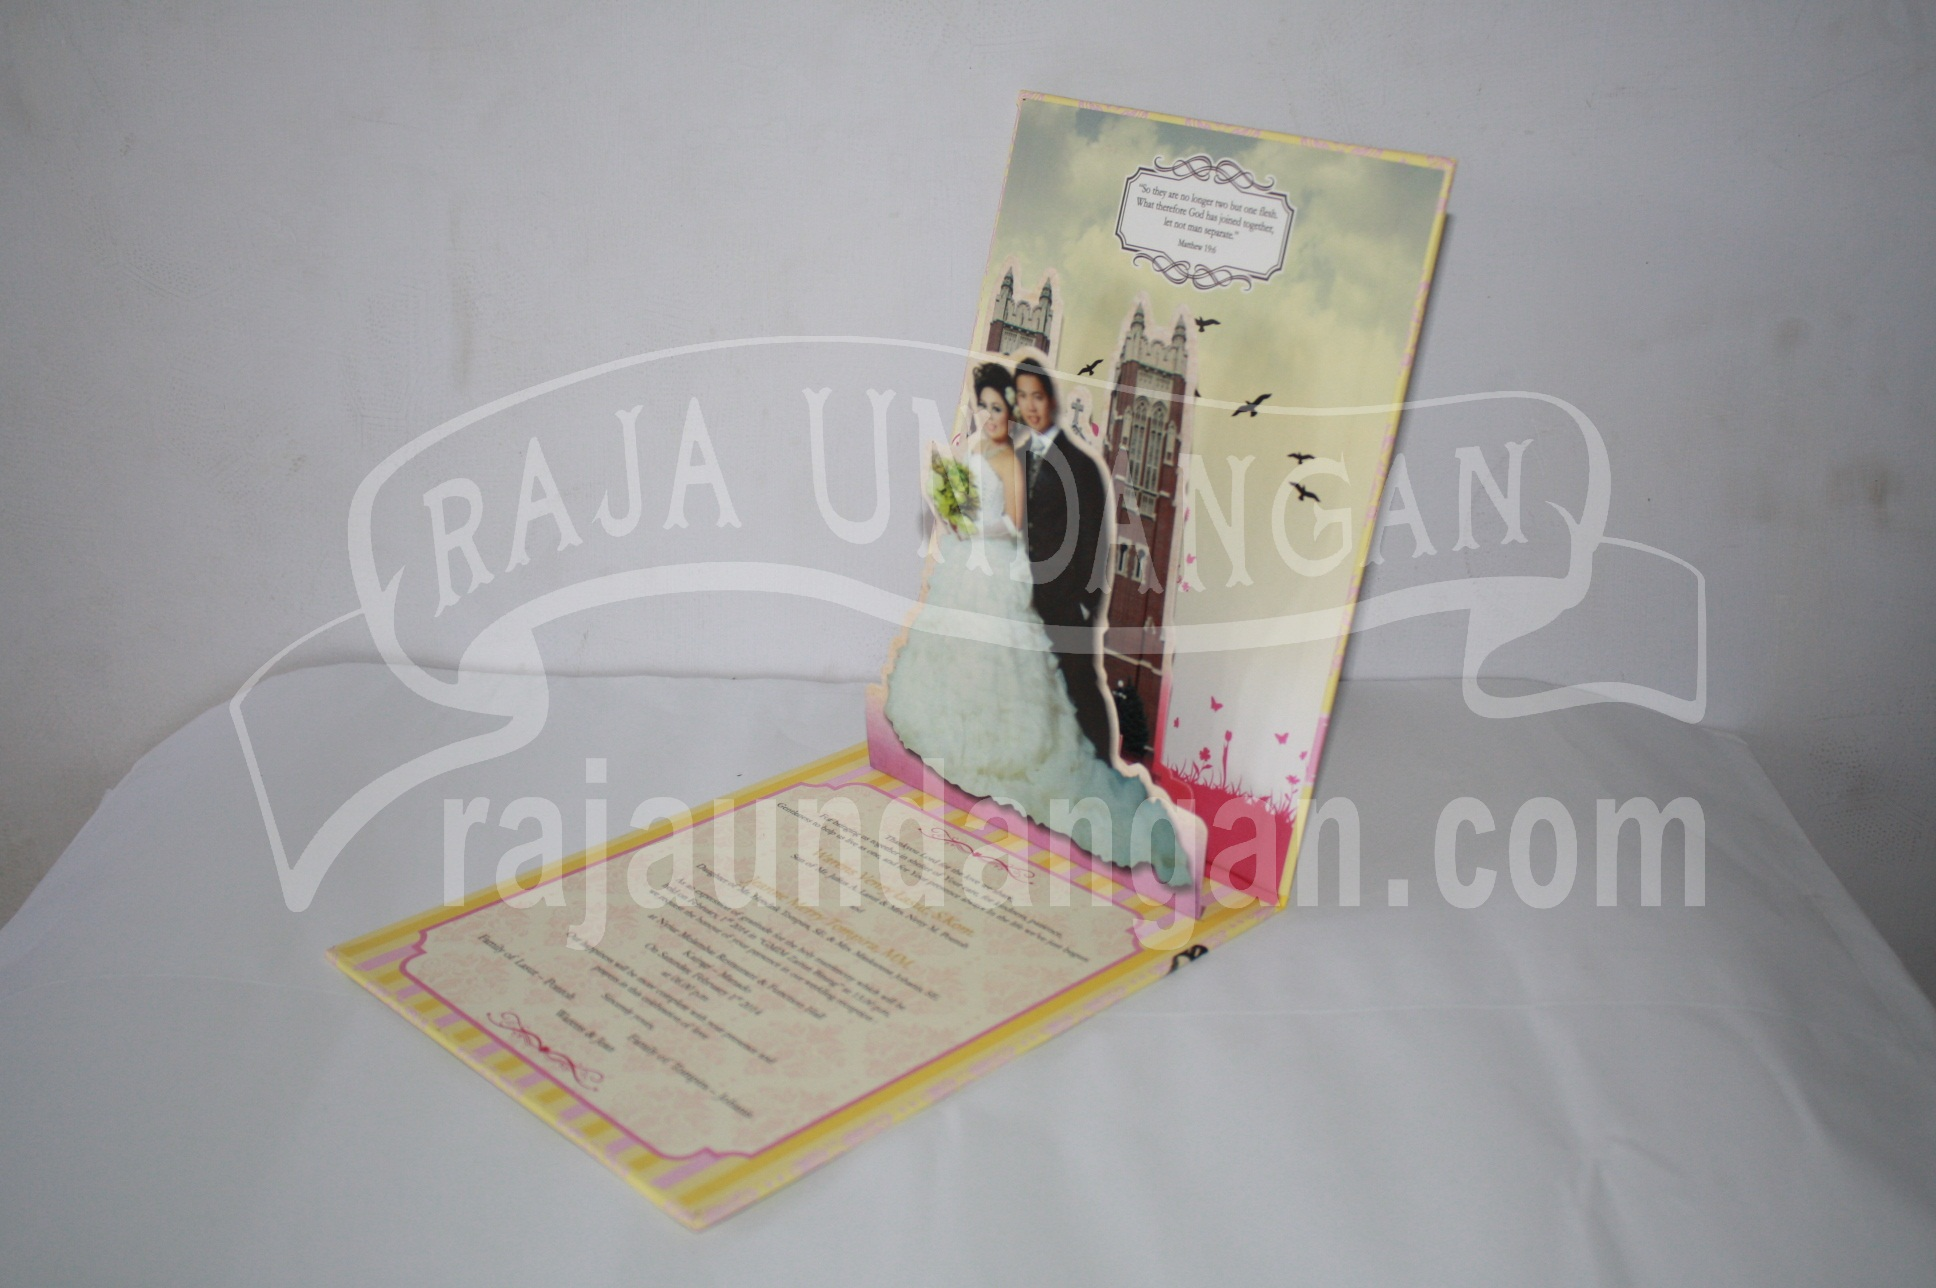 Undangan Pernikahan Hardcover Pop Up Warens dan Jean EDC 50 3 - Percetakan Wedding Invitations Eksklusif dan Elegan di Gunung Anyar